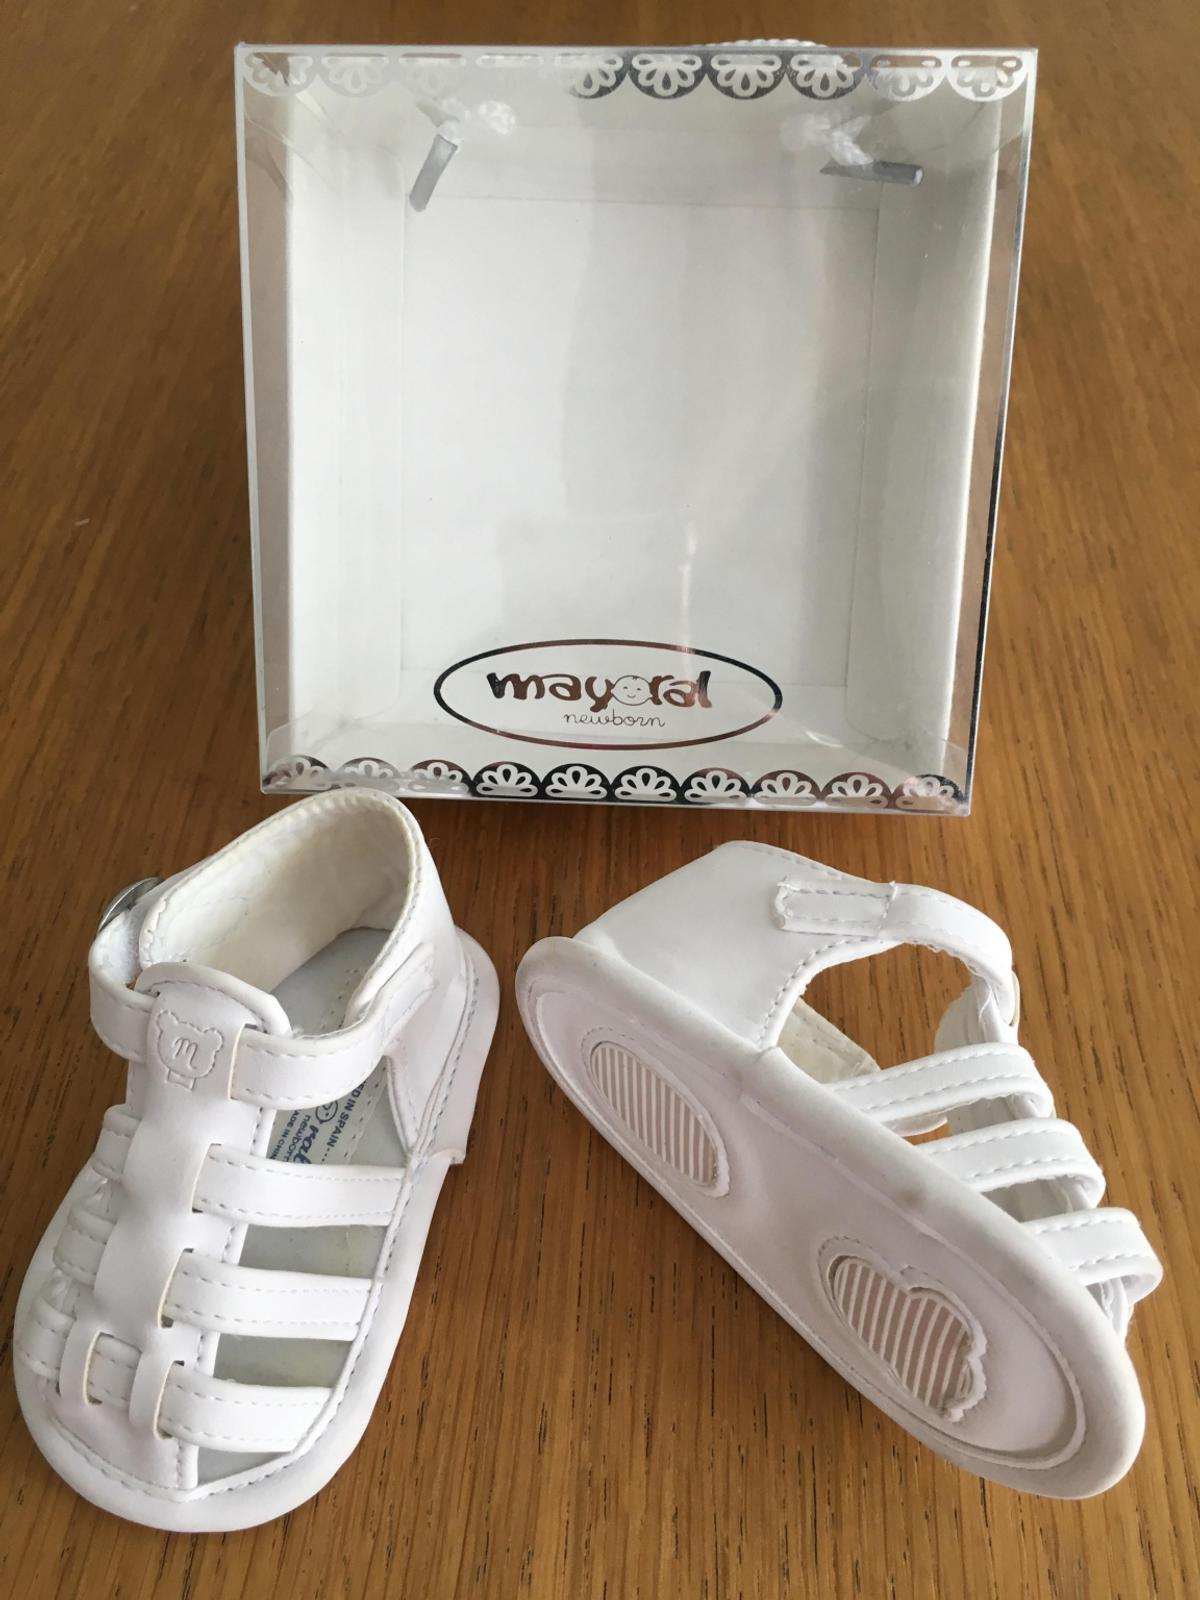 Newborn Shoes Vans Newborn Toddler Vans Spanish Shoes In Tn23 Ashford For